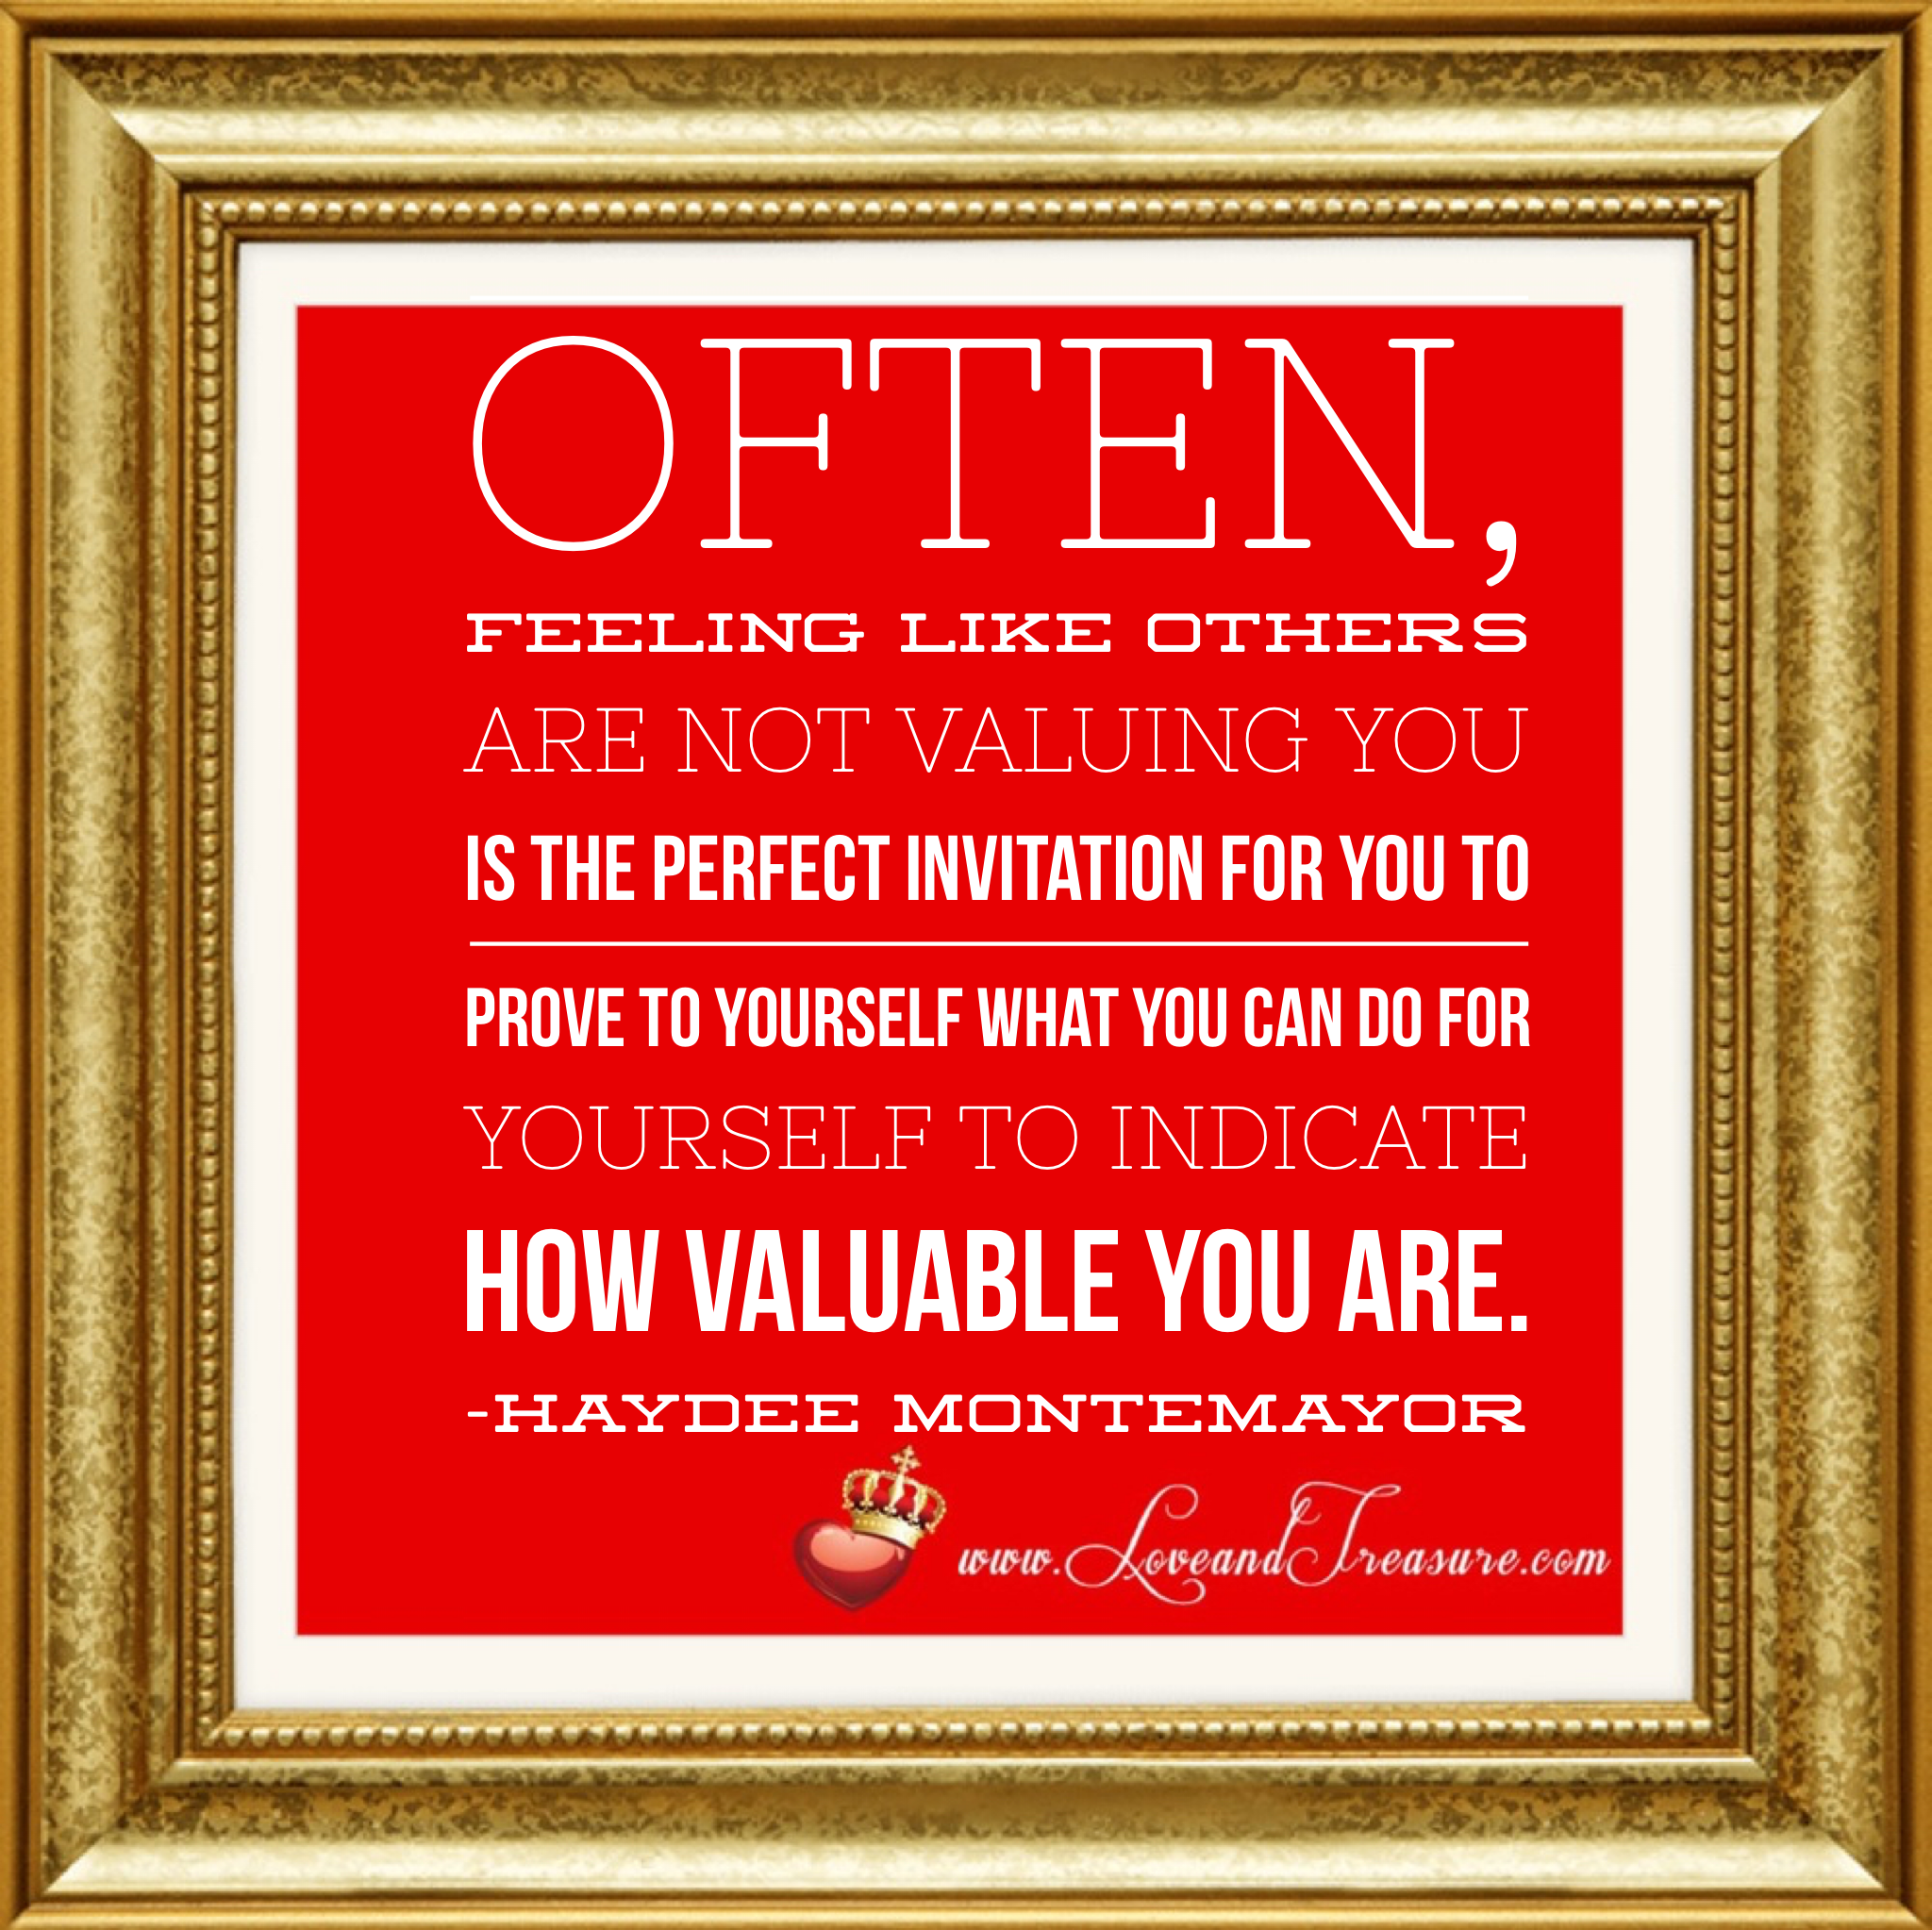 """Often, feeling like others are not valuing you is the perfect invitation for you to prove to yourself what you can do for yourself to indicate how valuable you are."" quote by Haydee Montemayor from Love and Treasure Blog www.loveandtreasure.com"